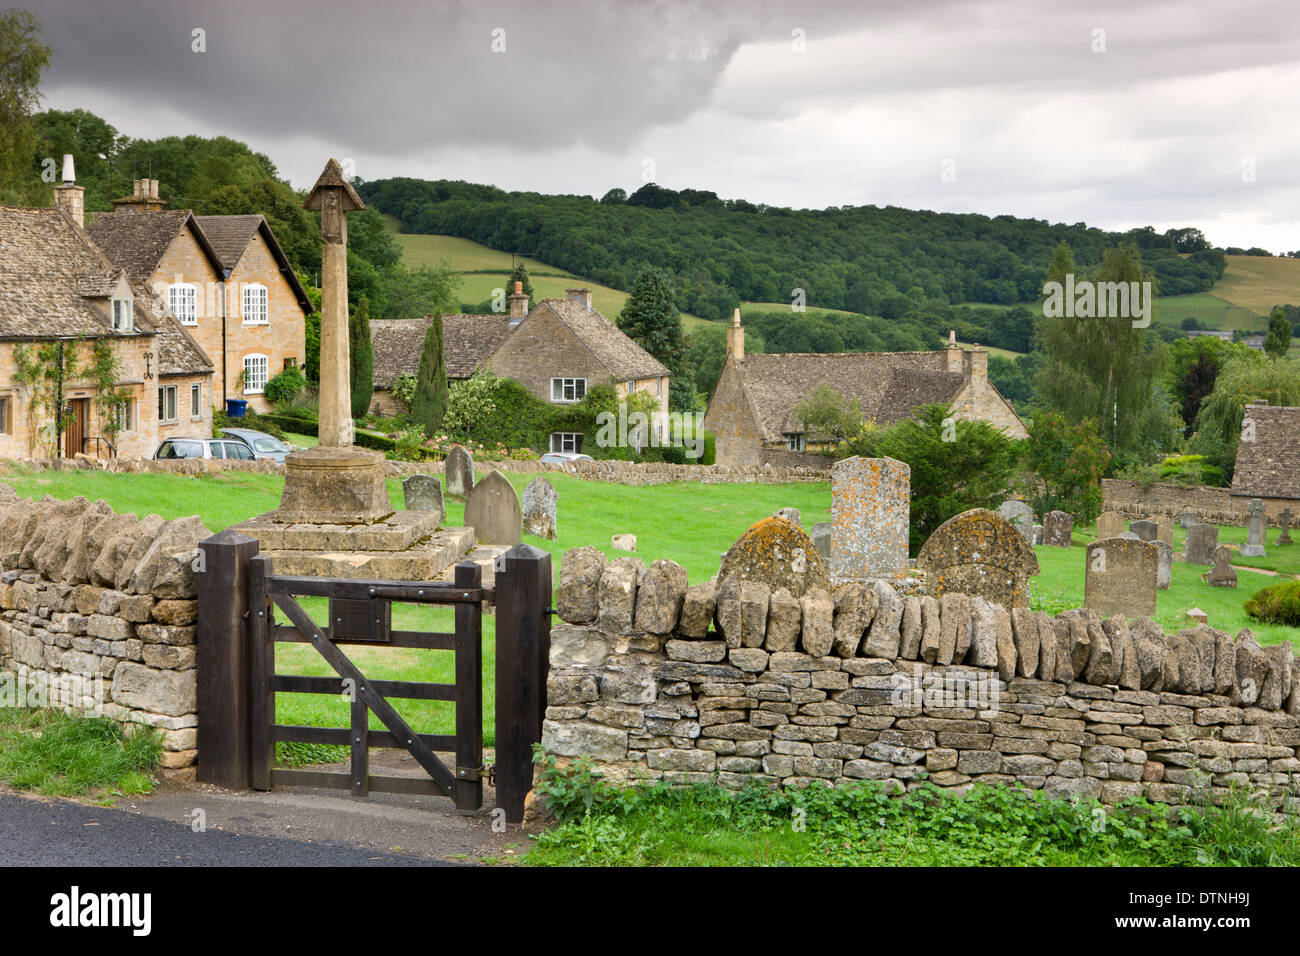 Graveyard and cottages in the pretty Cotswolds village of Snowshill, Worcestershire, England. Summer (July) 2010. - Stock Image